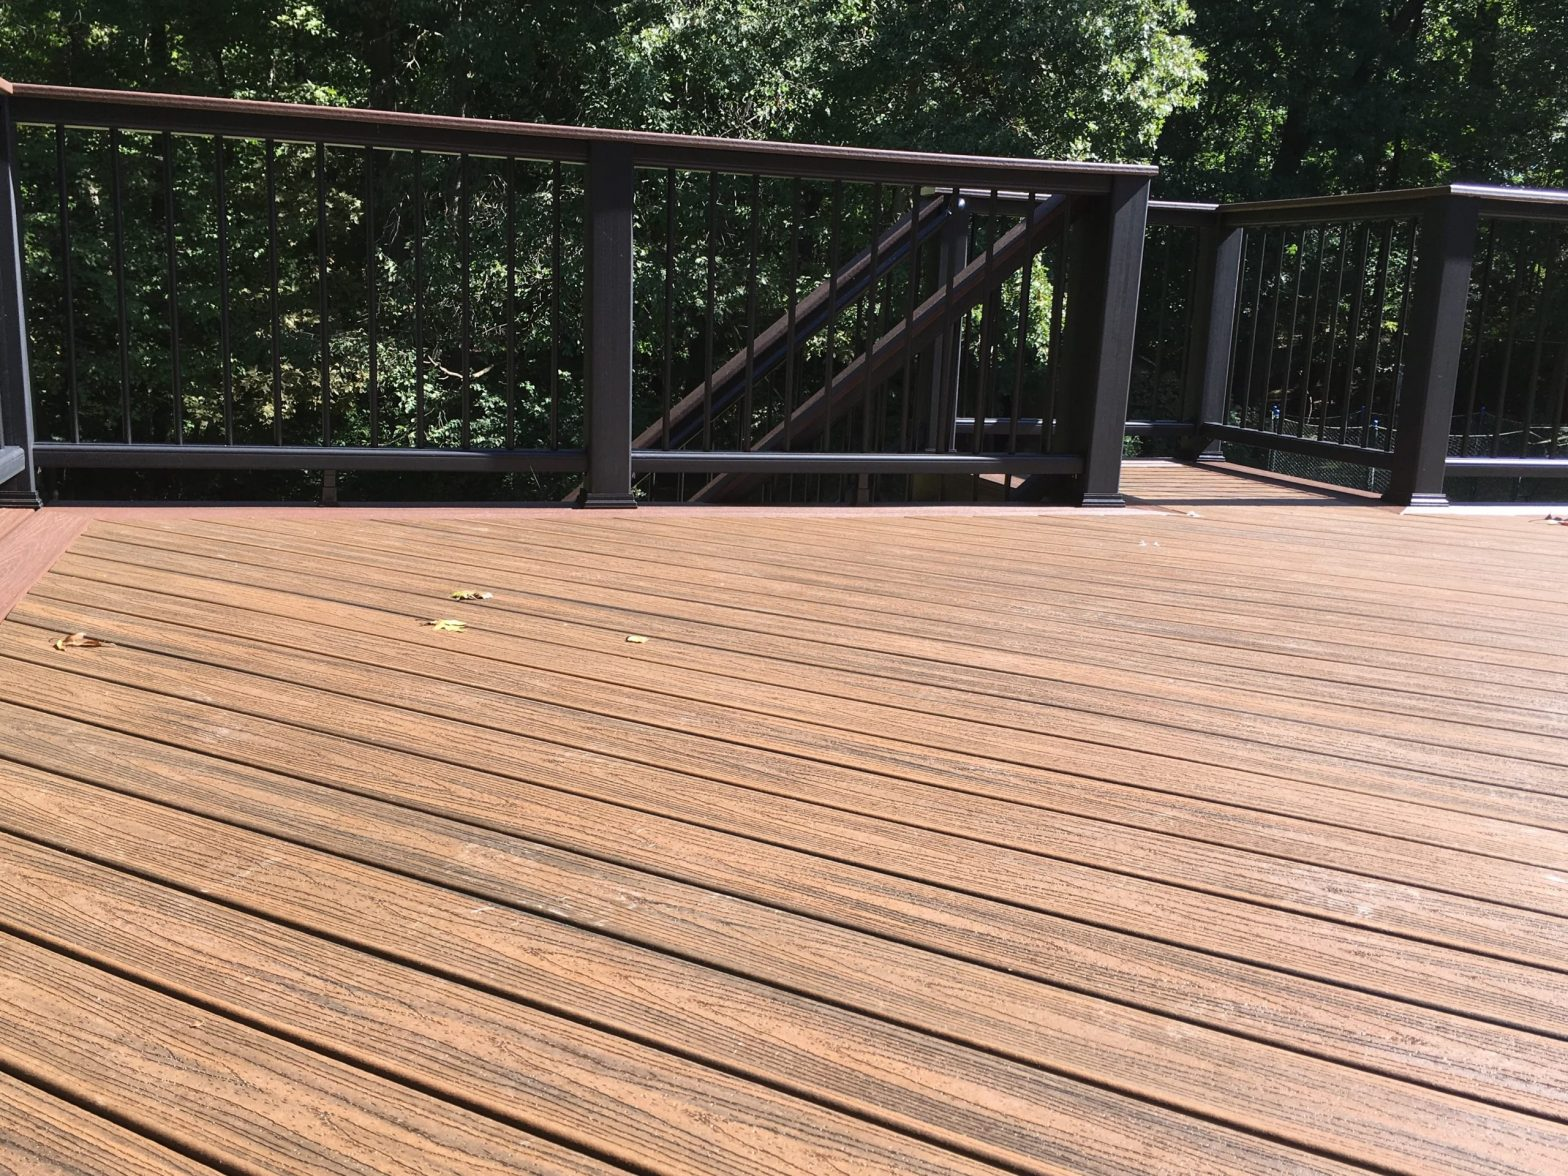 Synthetic brown decking with a black railing